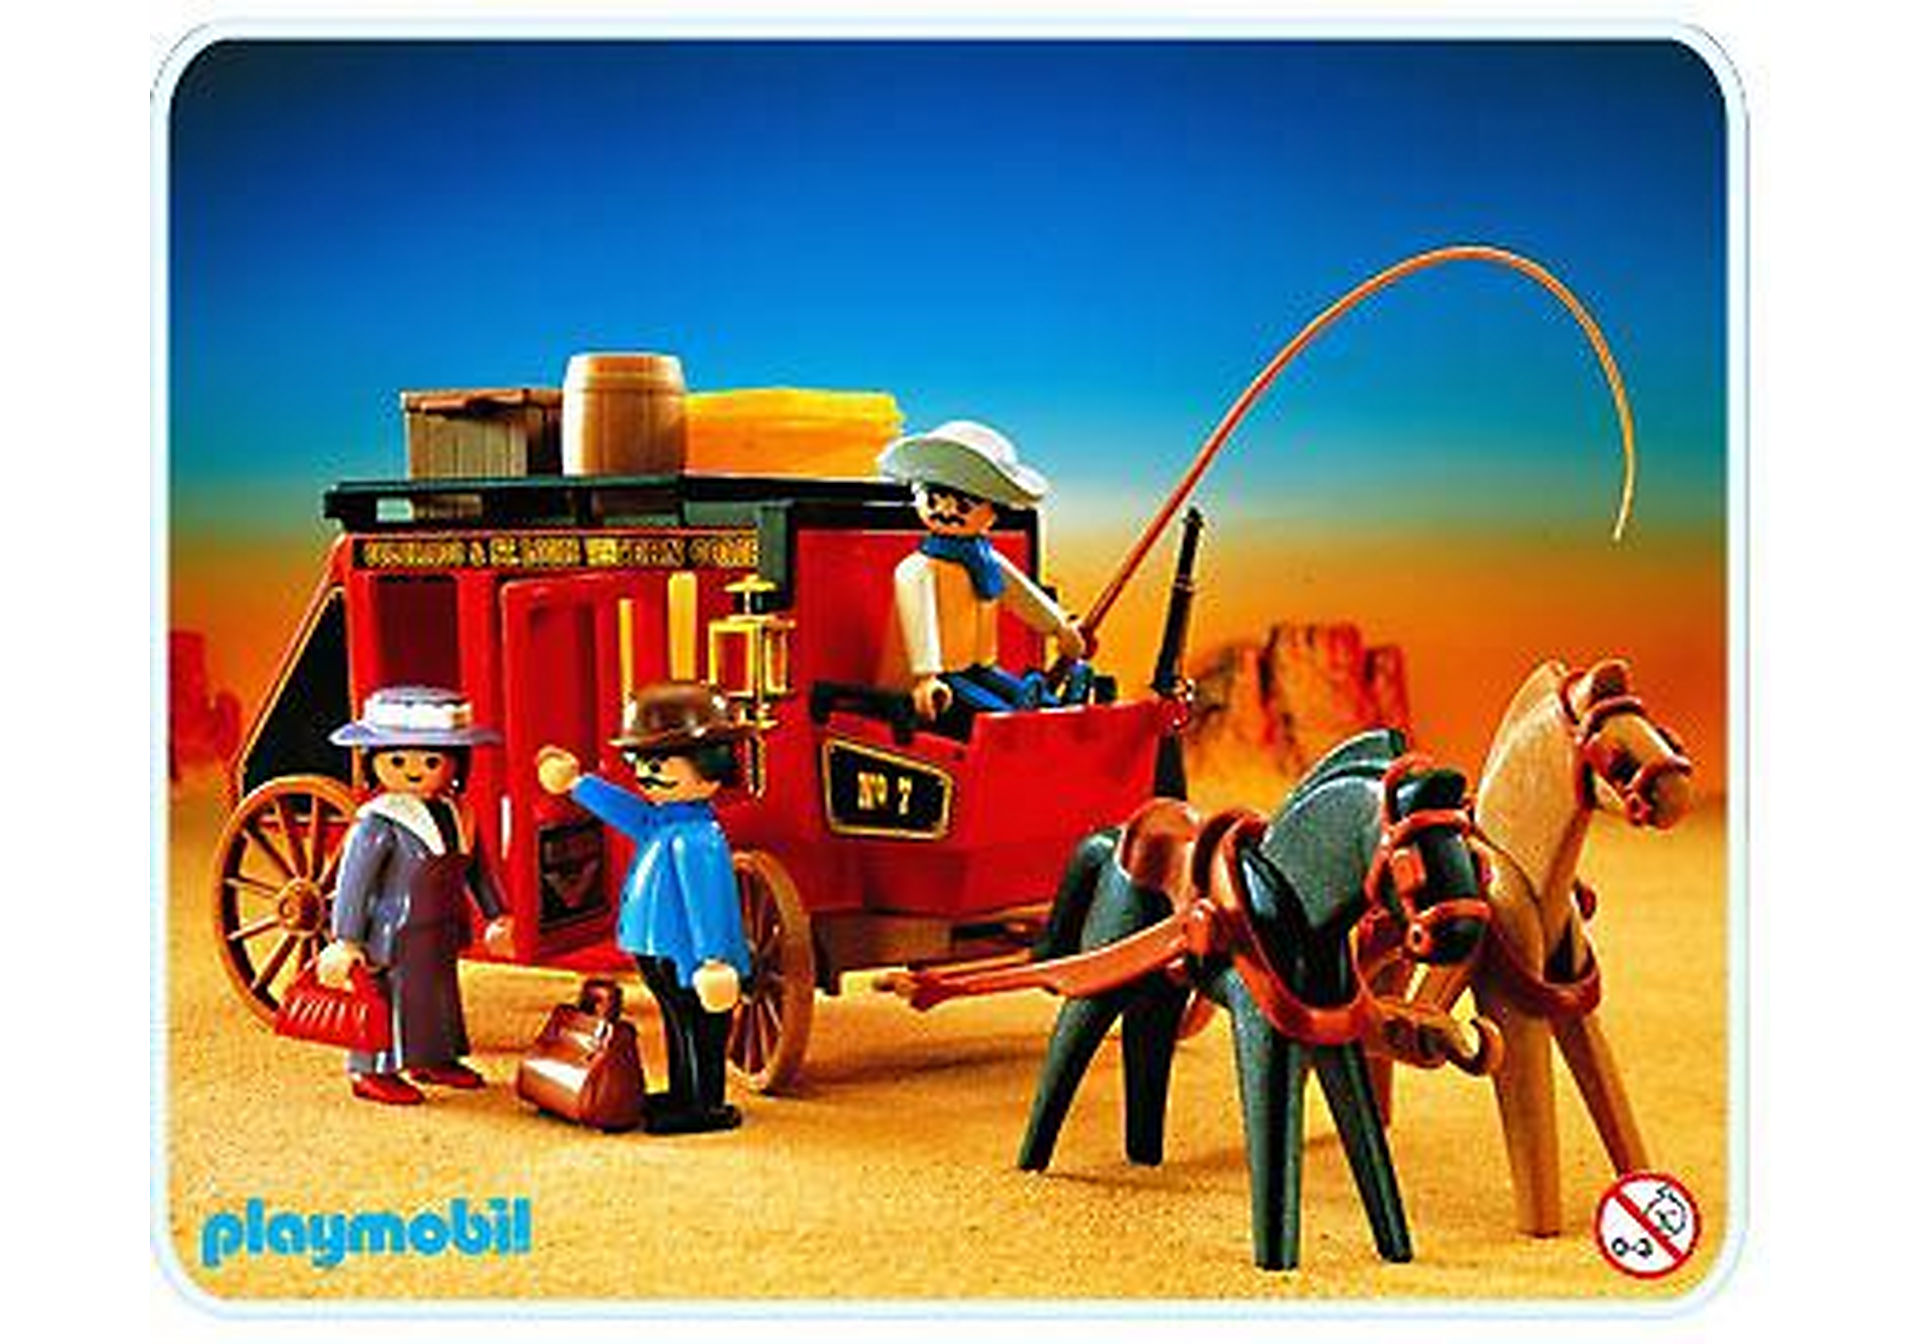 http://media.playmobil.com/i/playmobil/3245-B_product_detail/diligence wild west